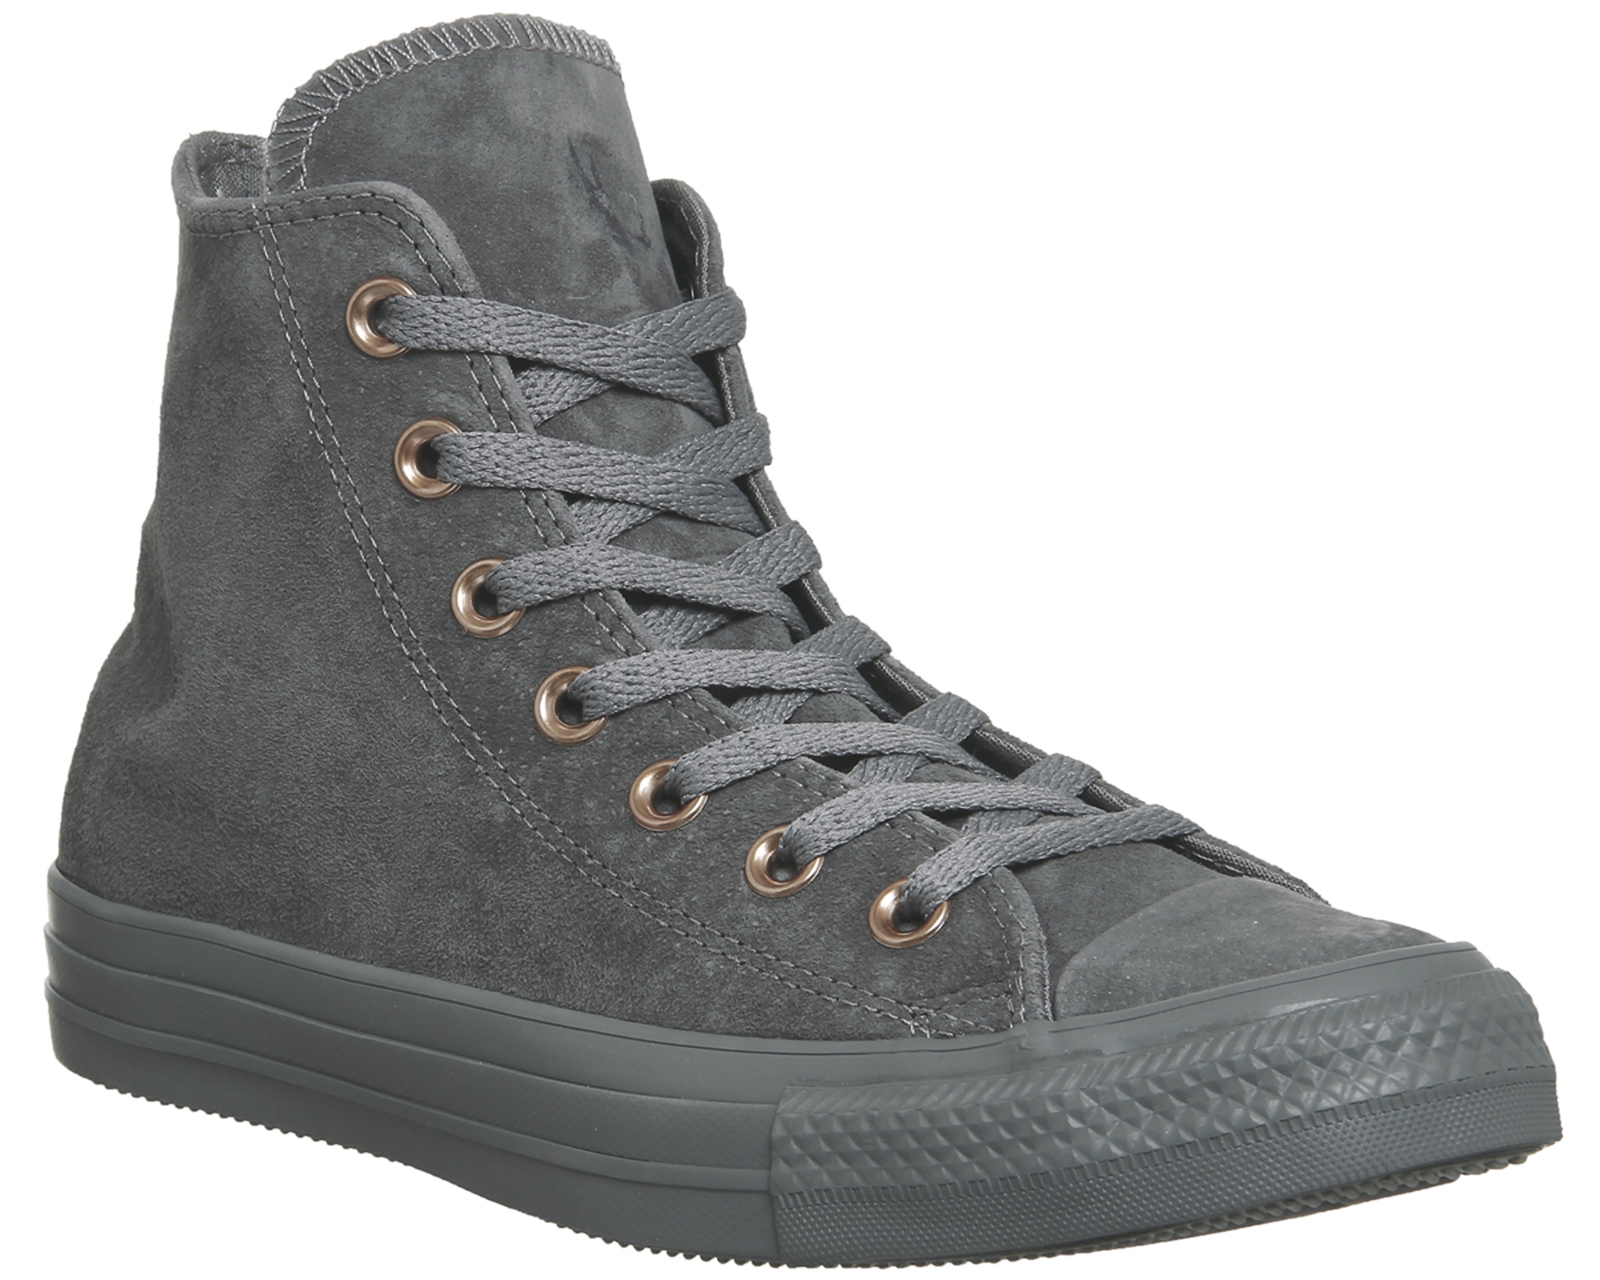 Sentinel Womens Converse All Star Hi Leather MASON GREY STUD EXCLUSIVE  Trainers Shoes 8cbf9f5f2